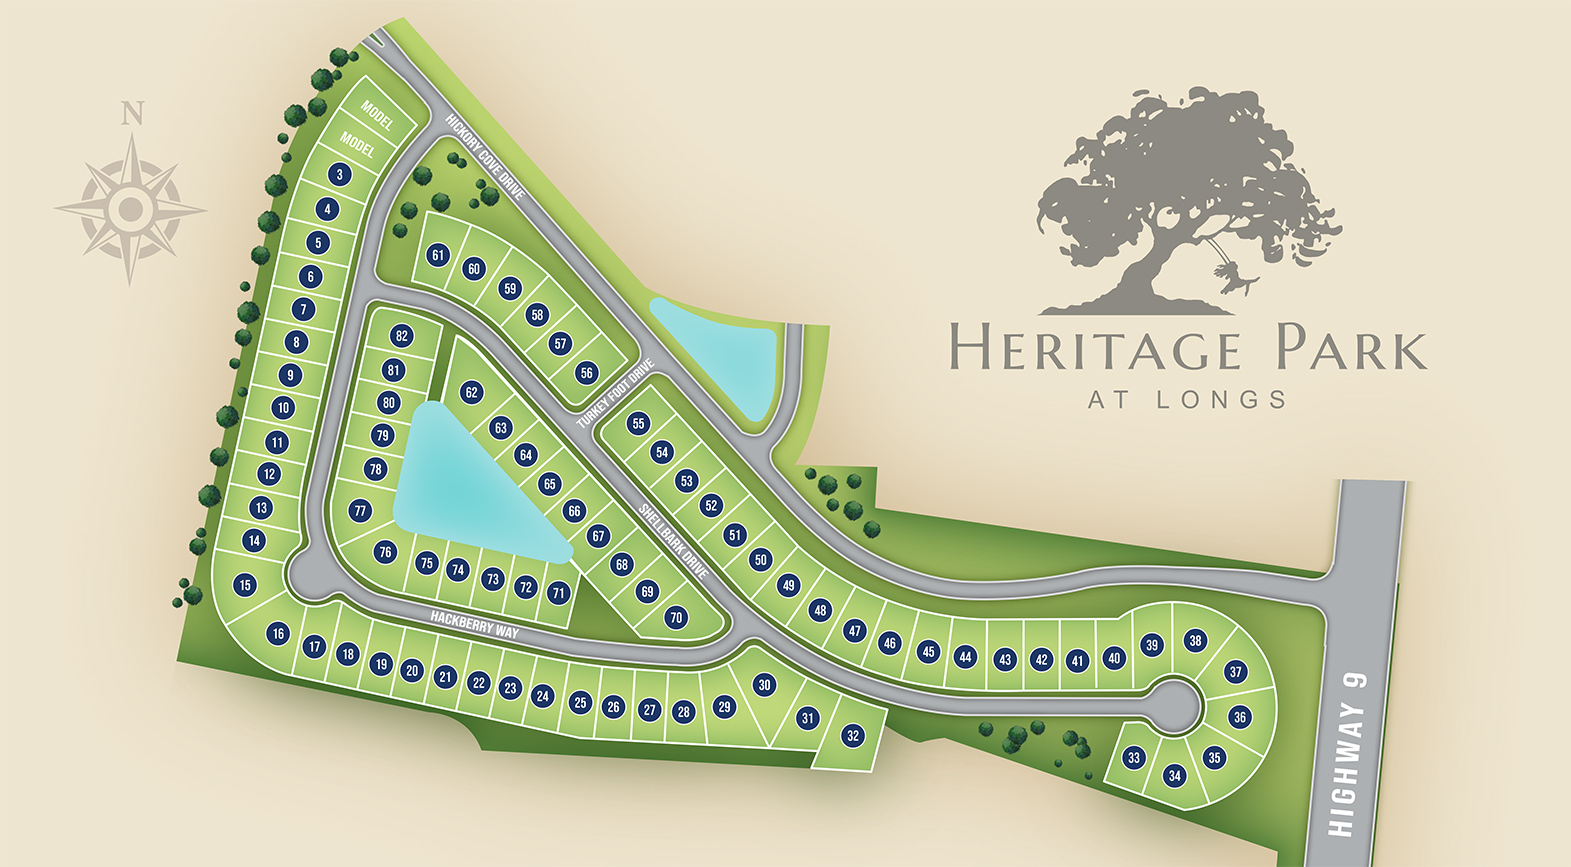 Longs, SC Heritage Park at Longs New Homes from Chesapeake